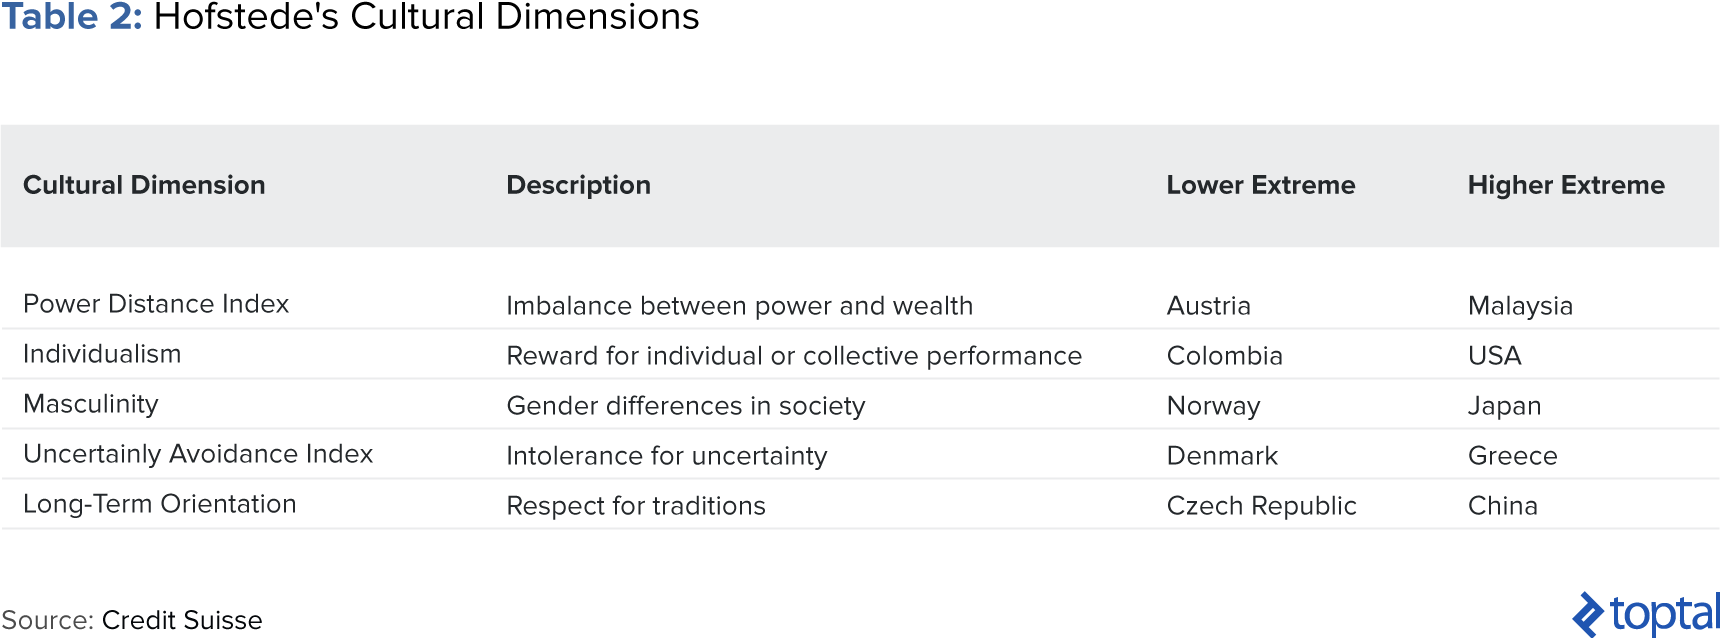 Table 2: Hofstede's Cultural Dimensions